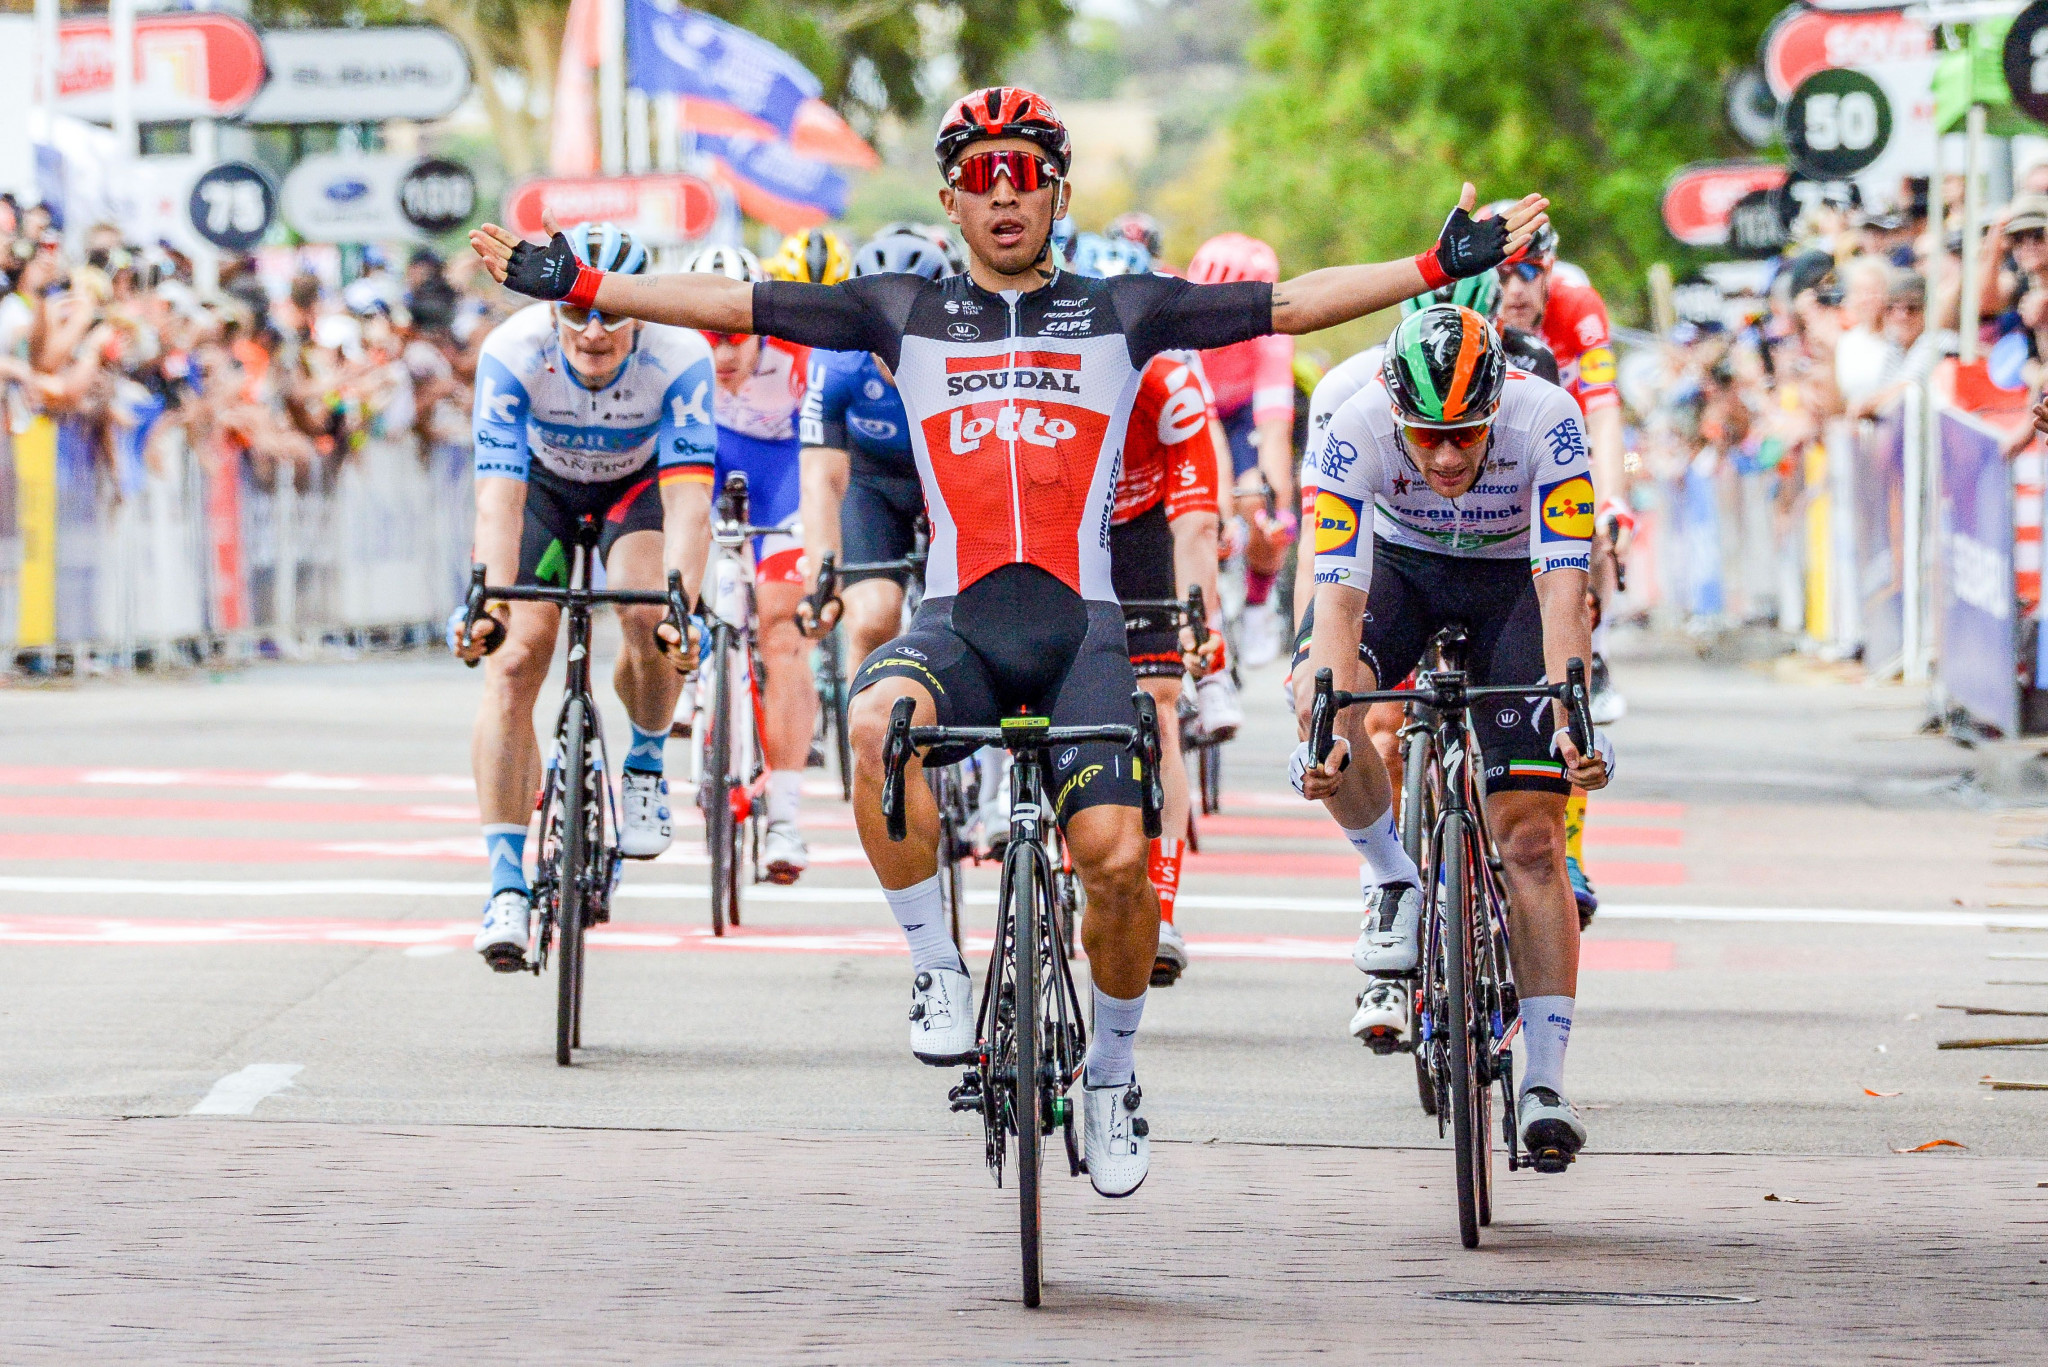 Ewan wins Tour Down Under stage four, but Porte retains overall lead